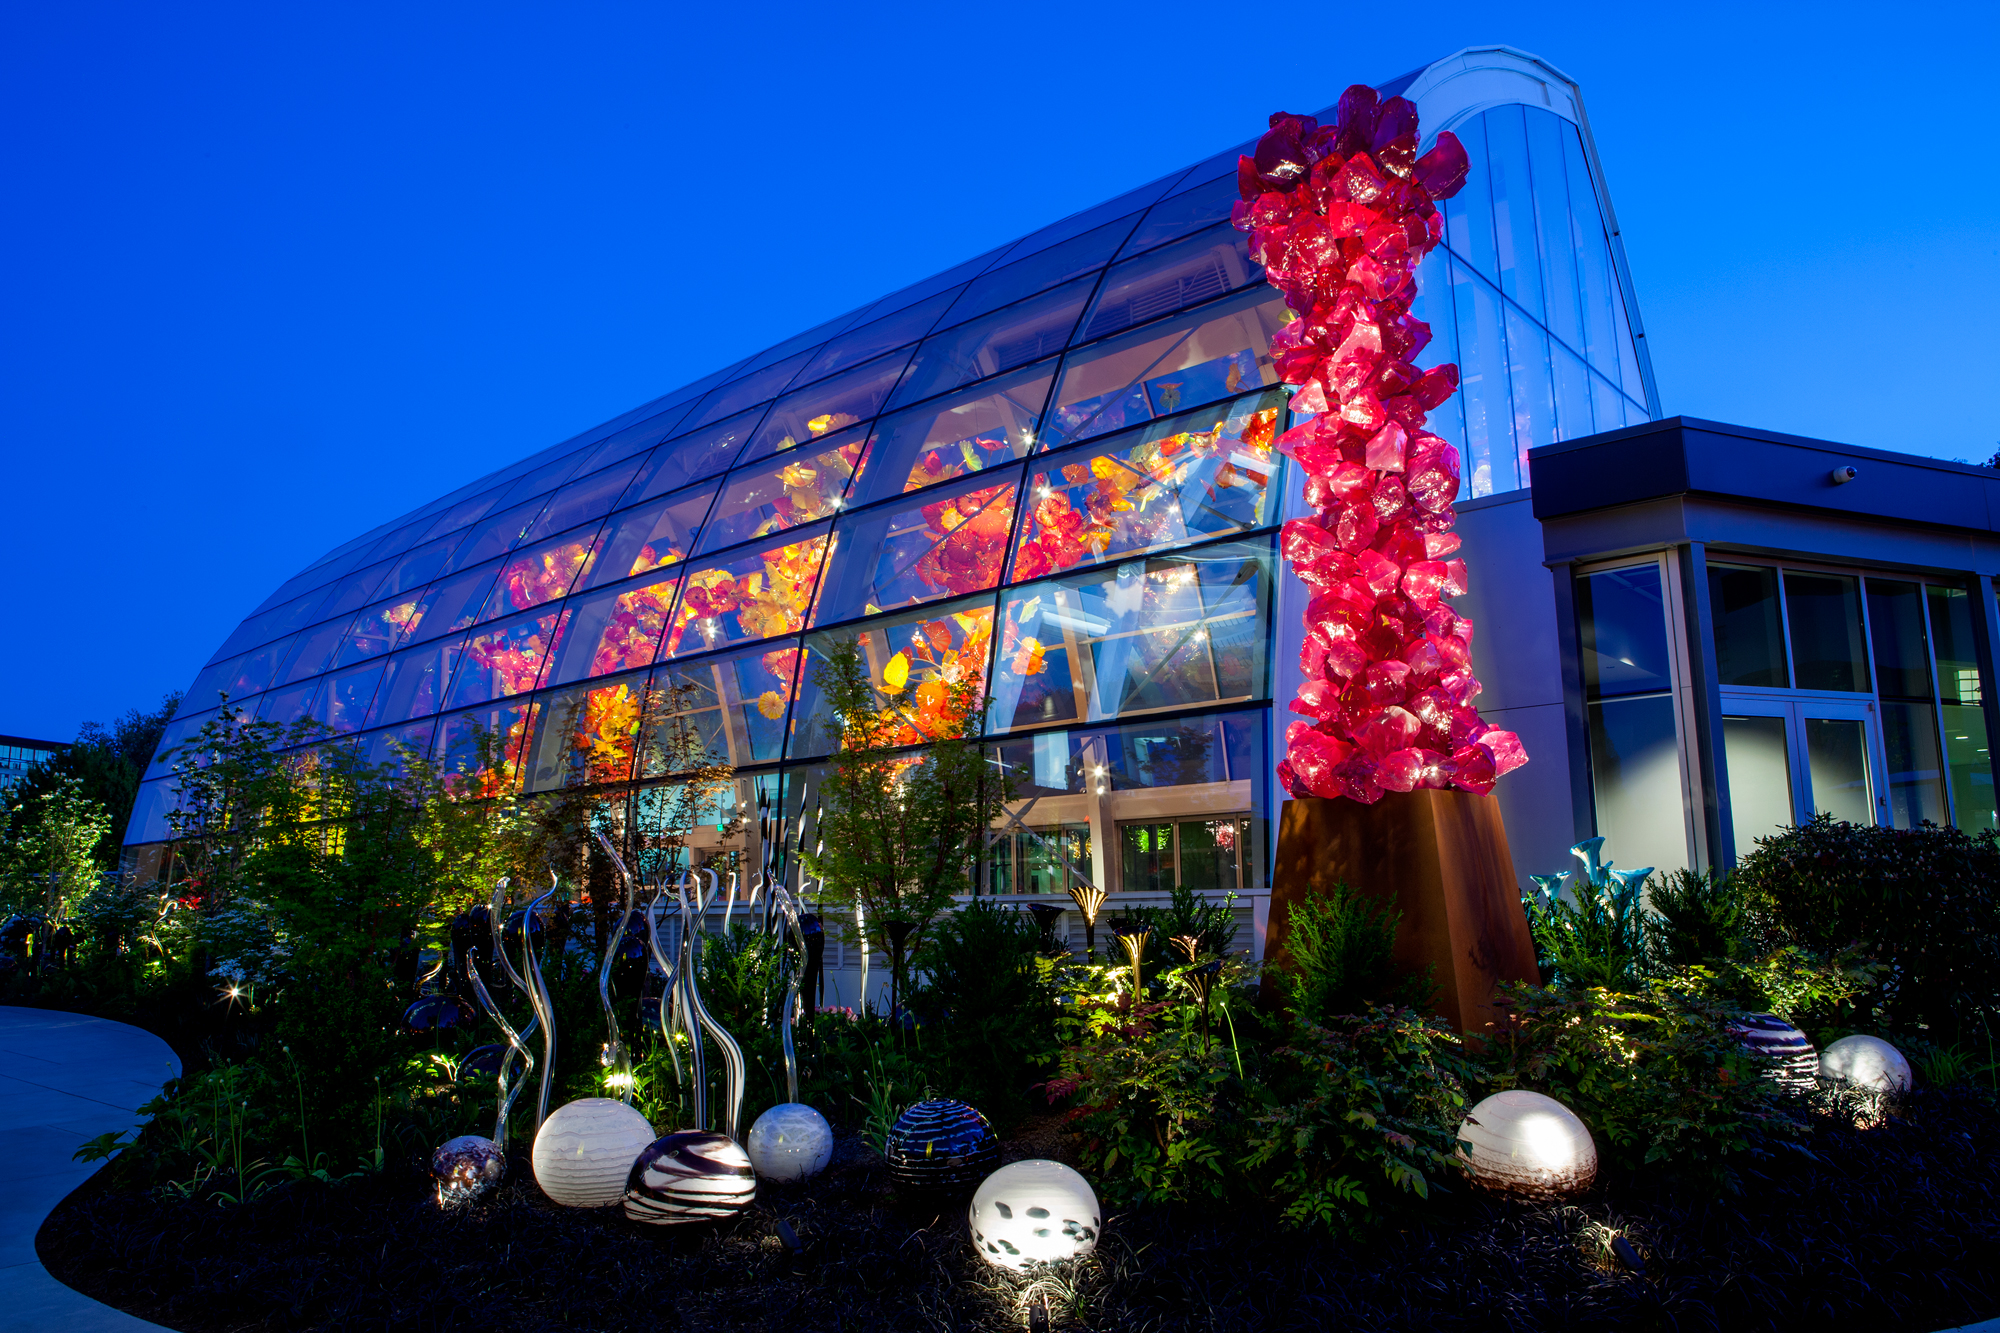 Chihuly Glasshouse. Photography courtesy of Chihuly Workshop. & Dale Chihuly Sent Thousands of Drawings by Fax Machine